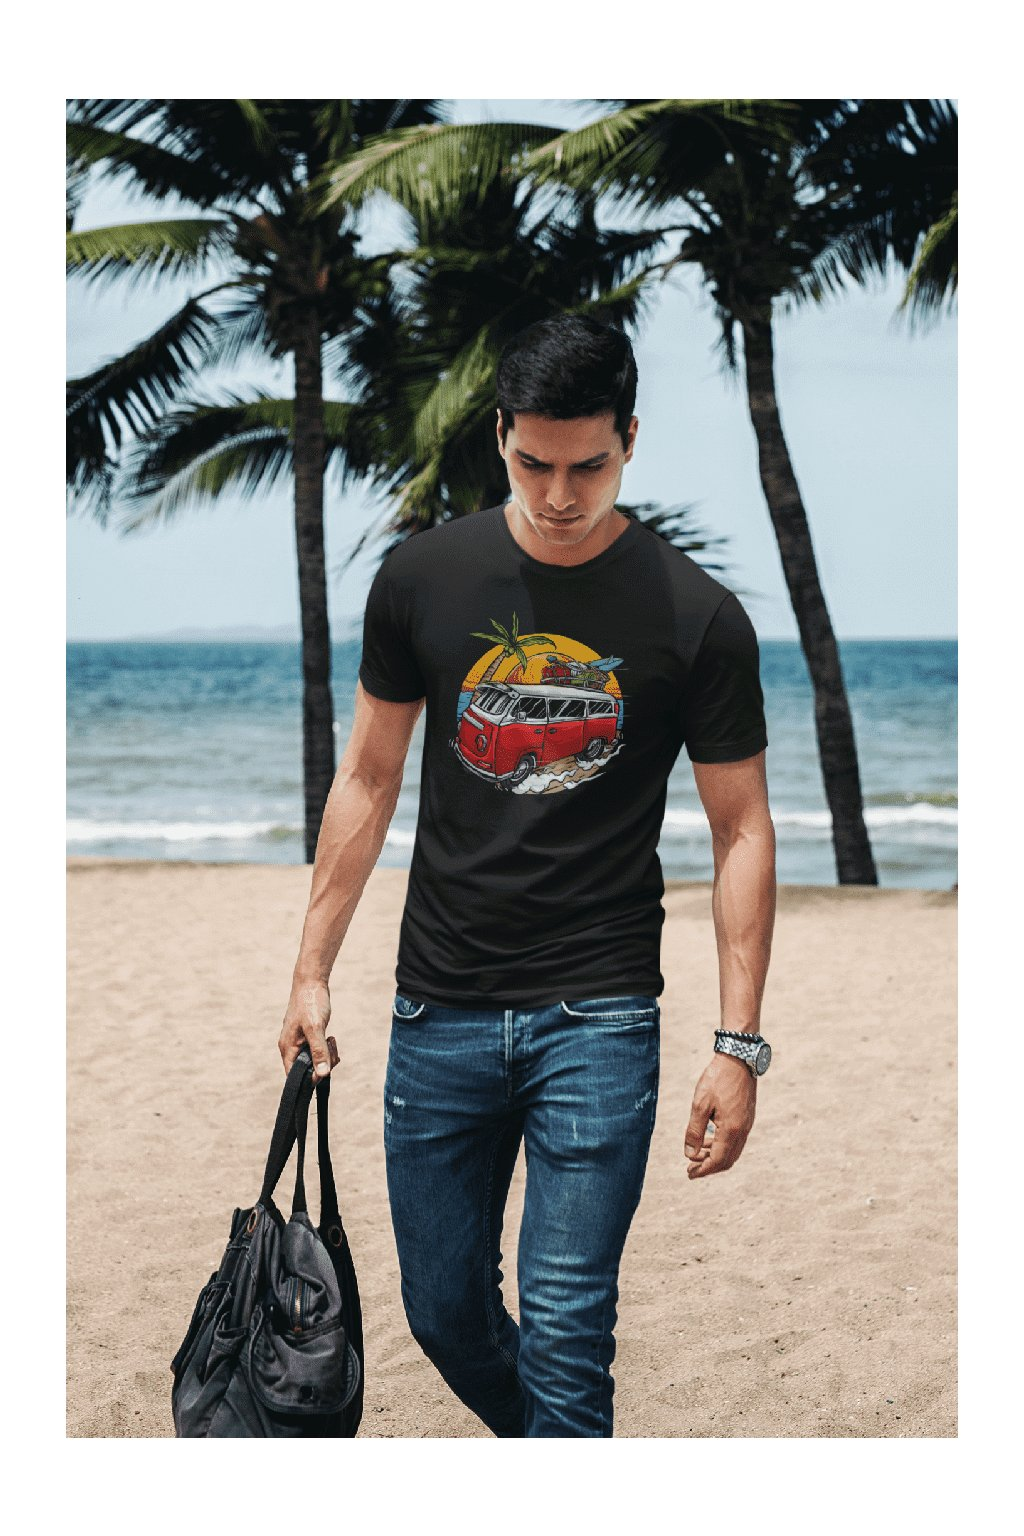 t shirt mockup of a man carrying a bag by the beach 431 el